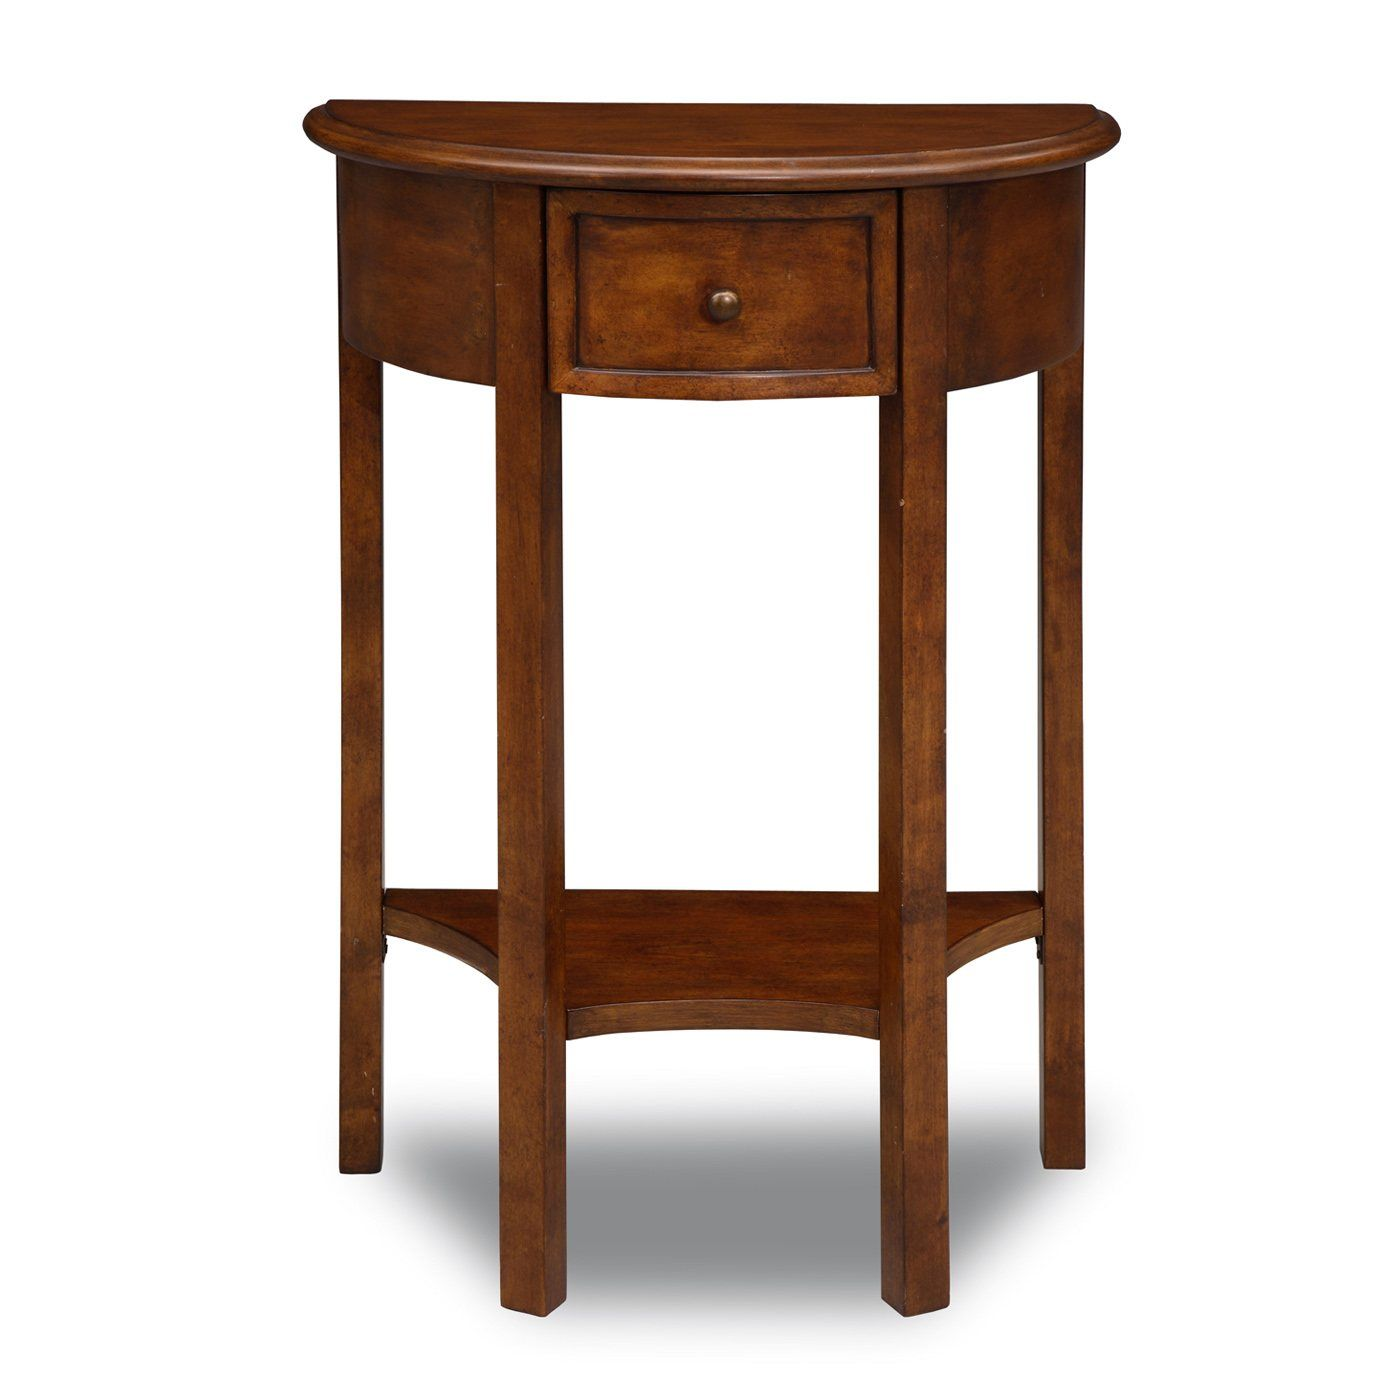 Leick 9030 Favorite Finds Demilune Hall Stand Entry Table Home Furniture Showroom Hall Stand